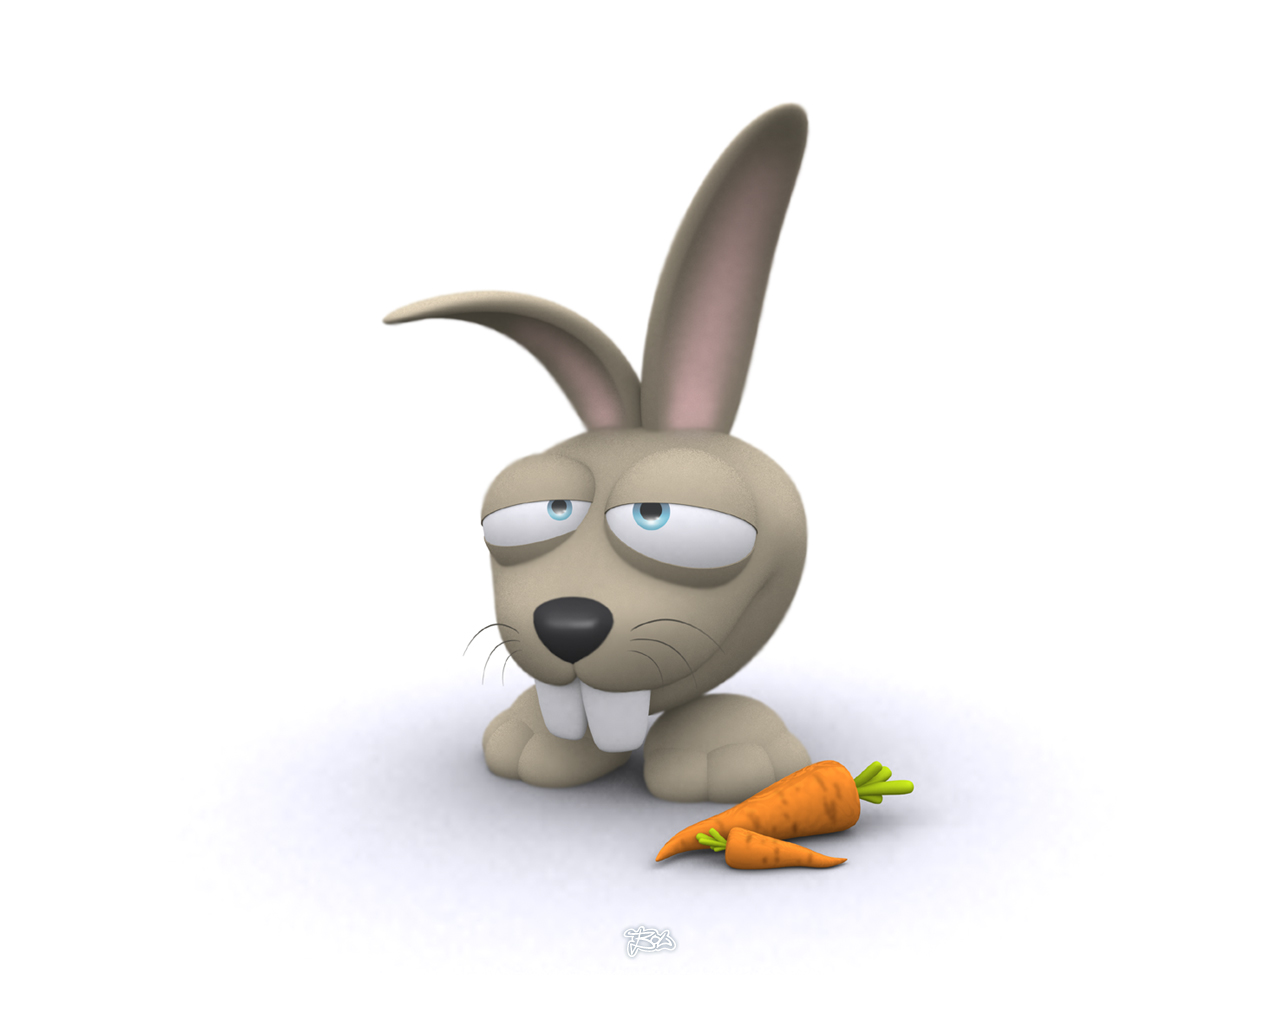 Funny Rabbit Cartoon Wallpaper | Funny Collection World